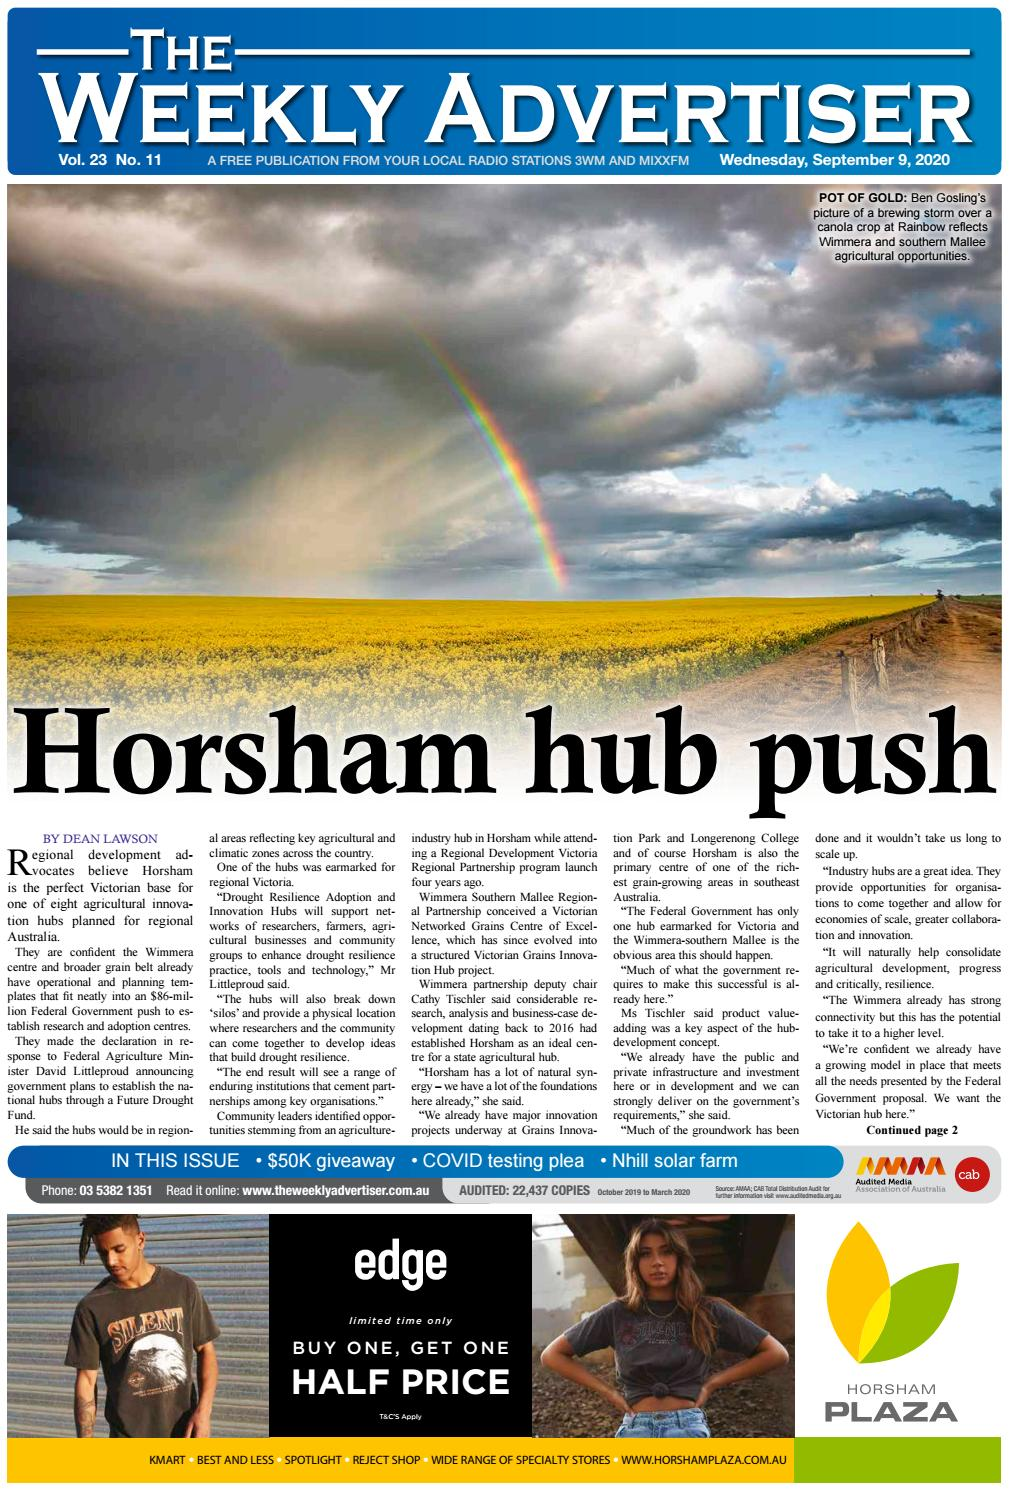 The Weekly Advertiser Wednesday September 9 2020 By The Weekly Advertiser Issuu